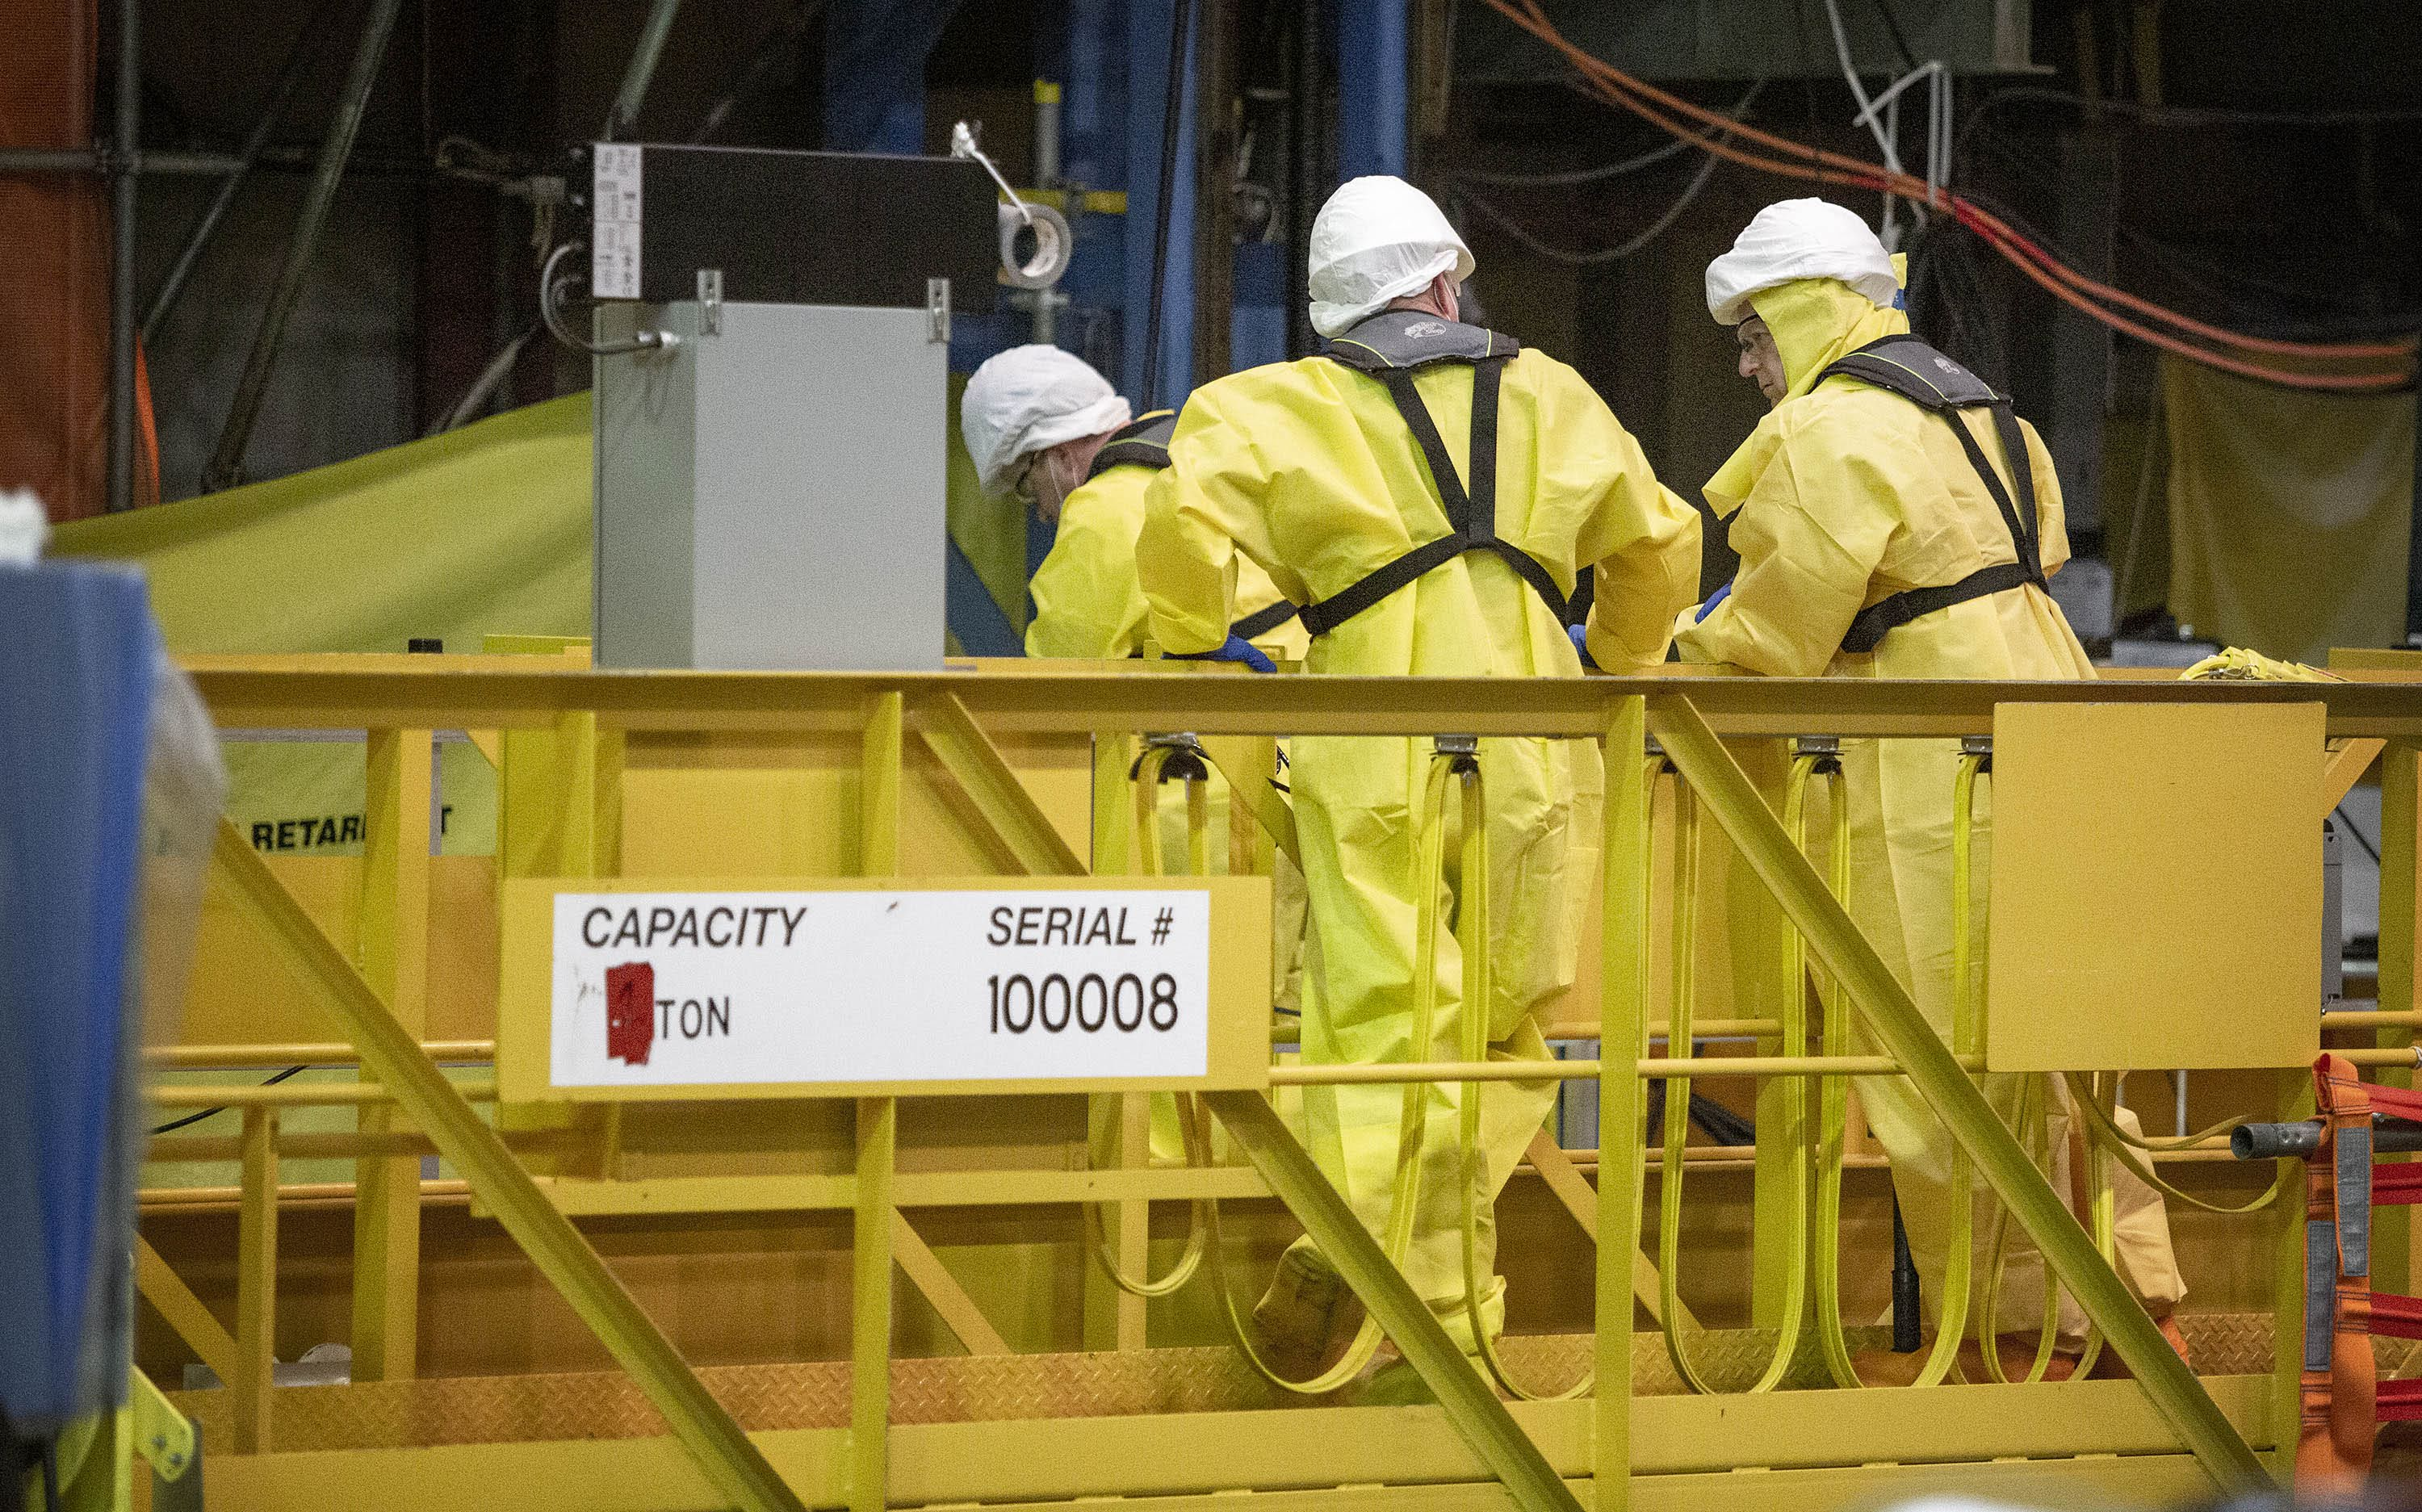 A decommissioning crew works on dismantling the plant at Pilgrim Nuclear Power Station. (Robin Lubbock/WBUR)